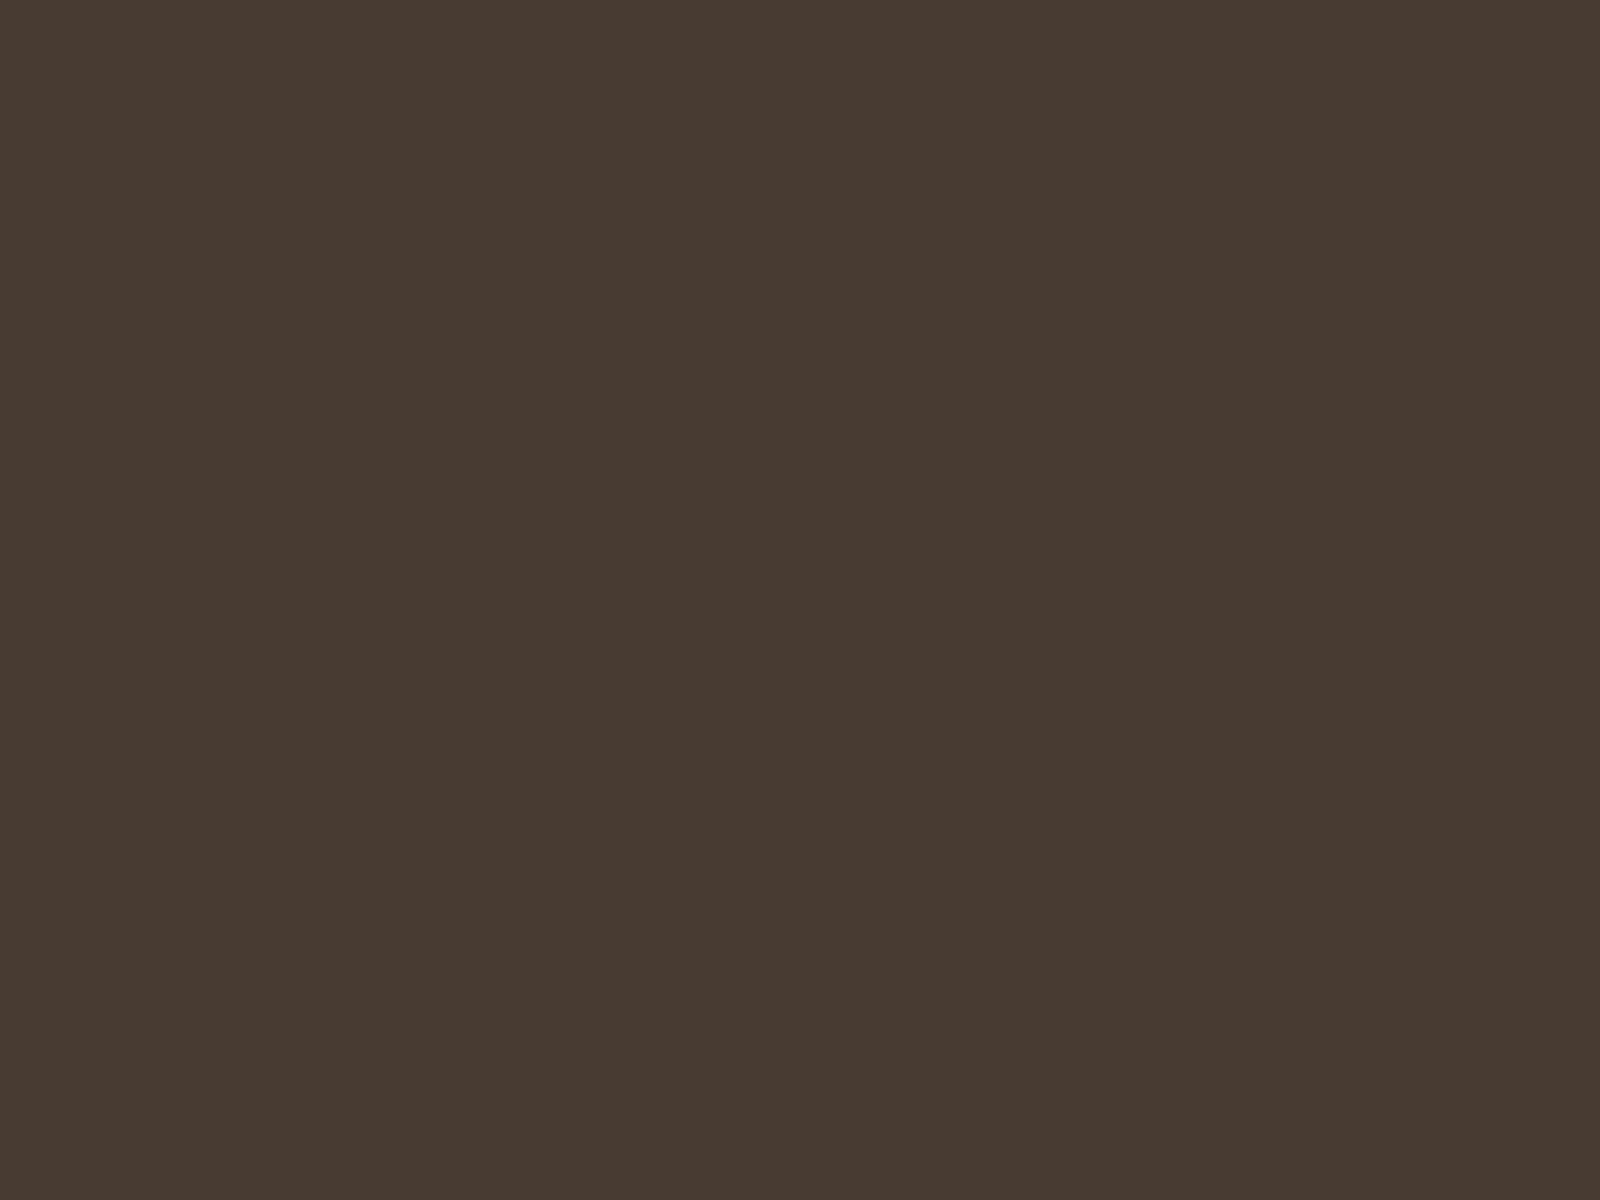 1600x1200 dark taupe solid color background for What is dark taupe color